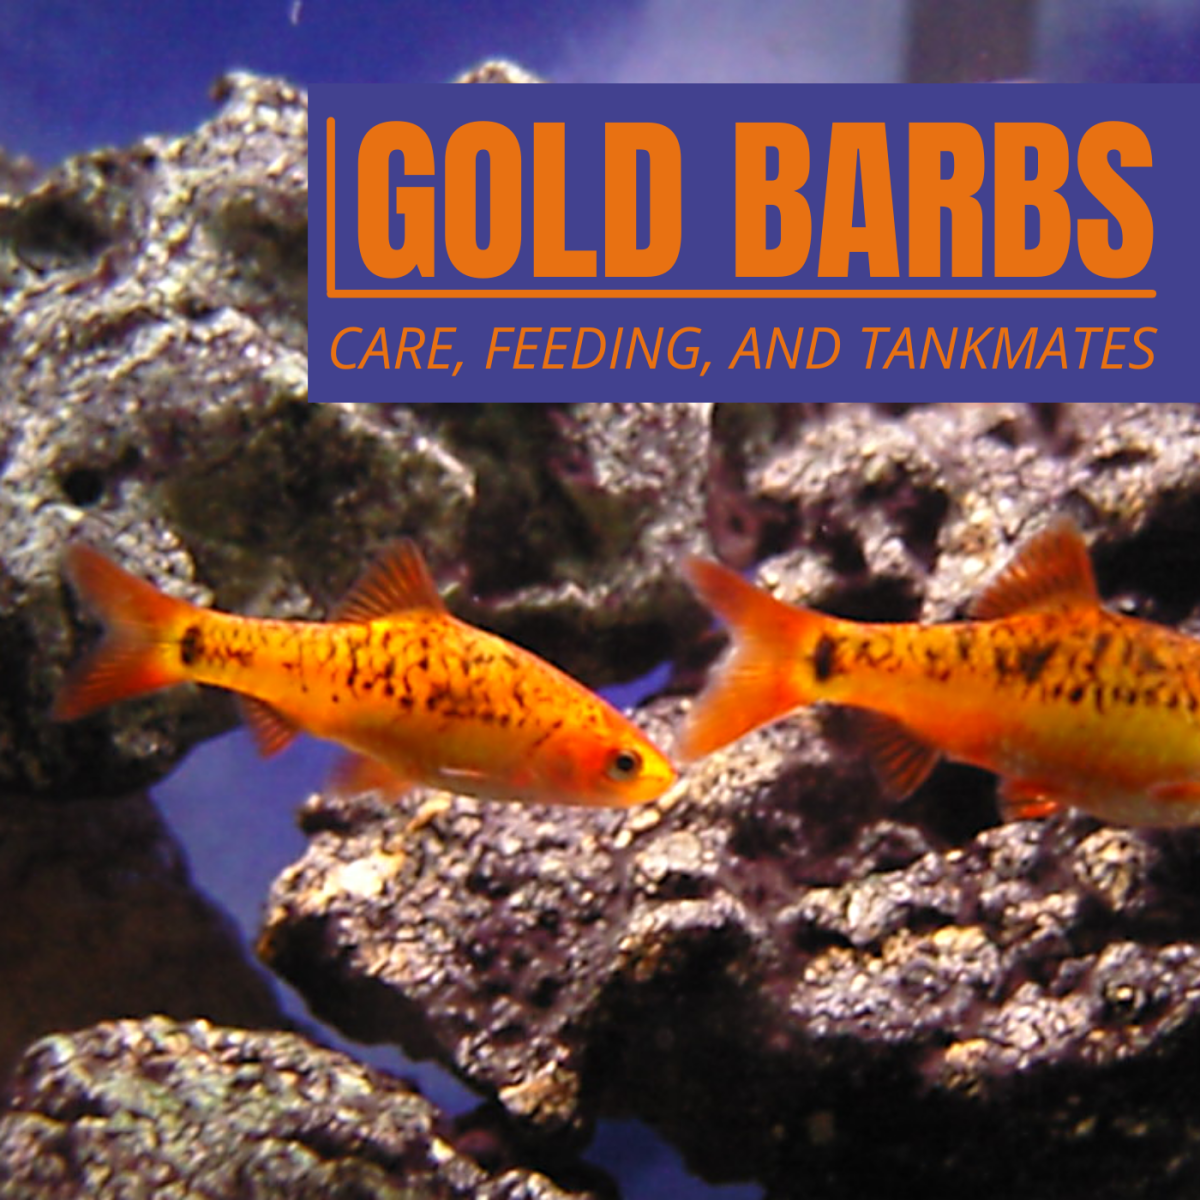 Gold barbs are perfect for beginner aquarists or those looking for small, semi-aggressive schooling fish for a community tank.